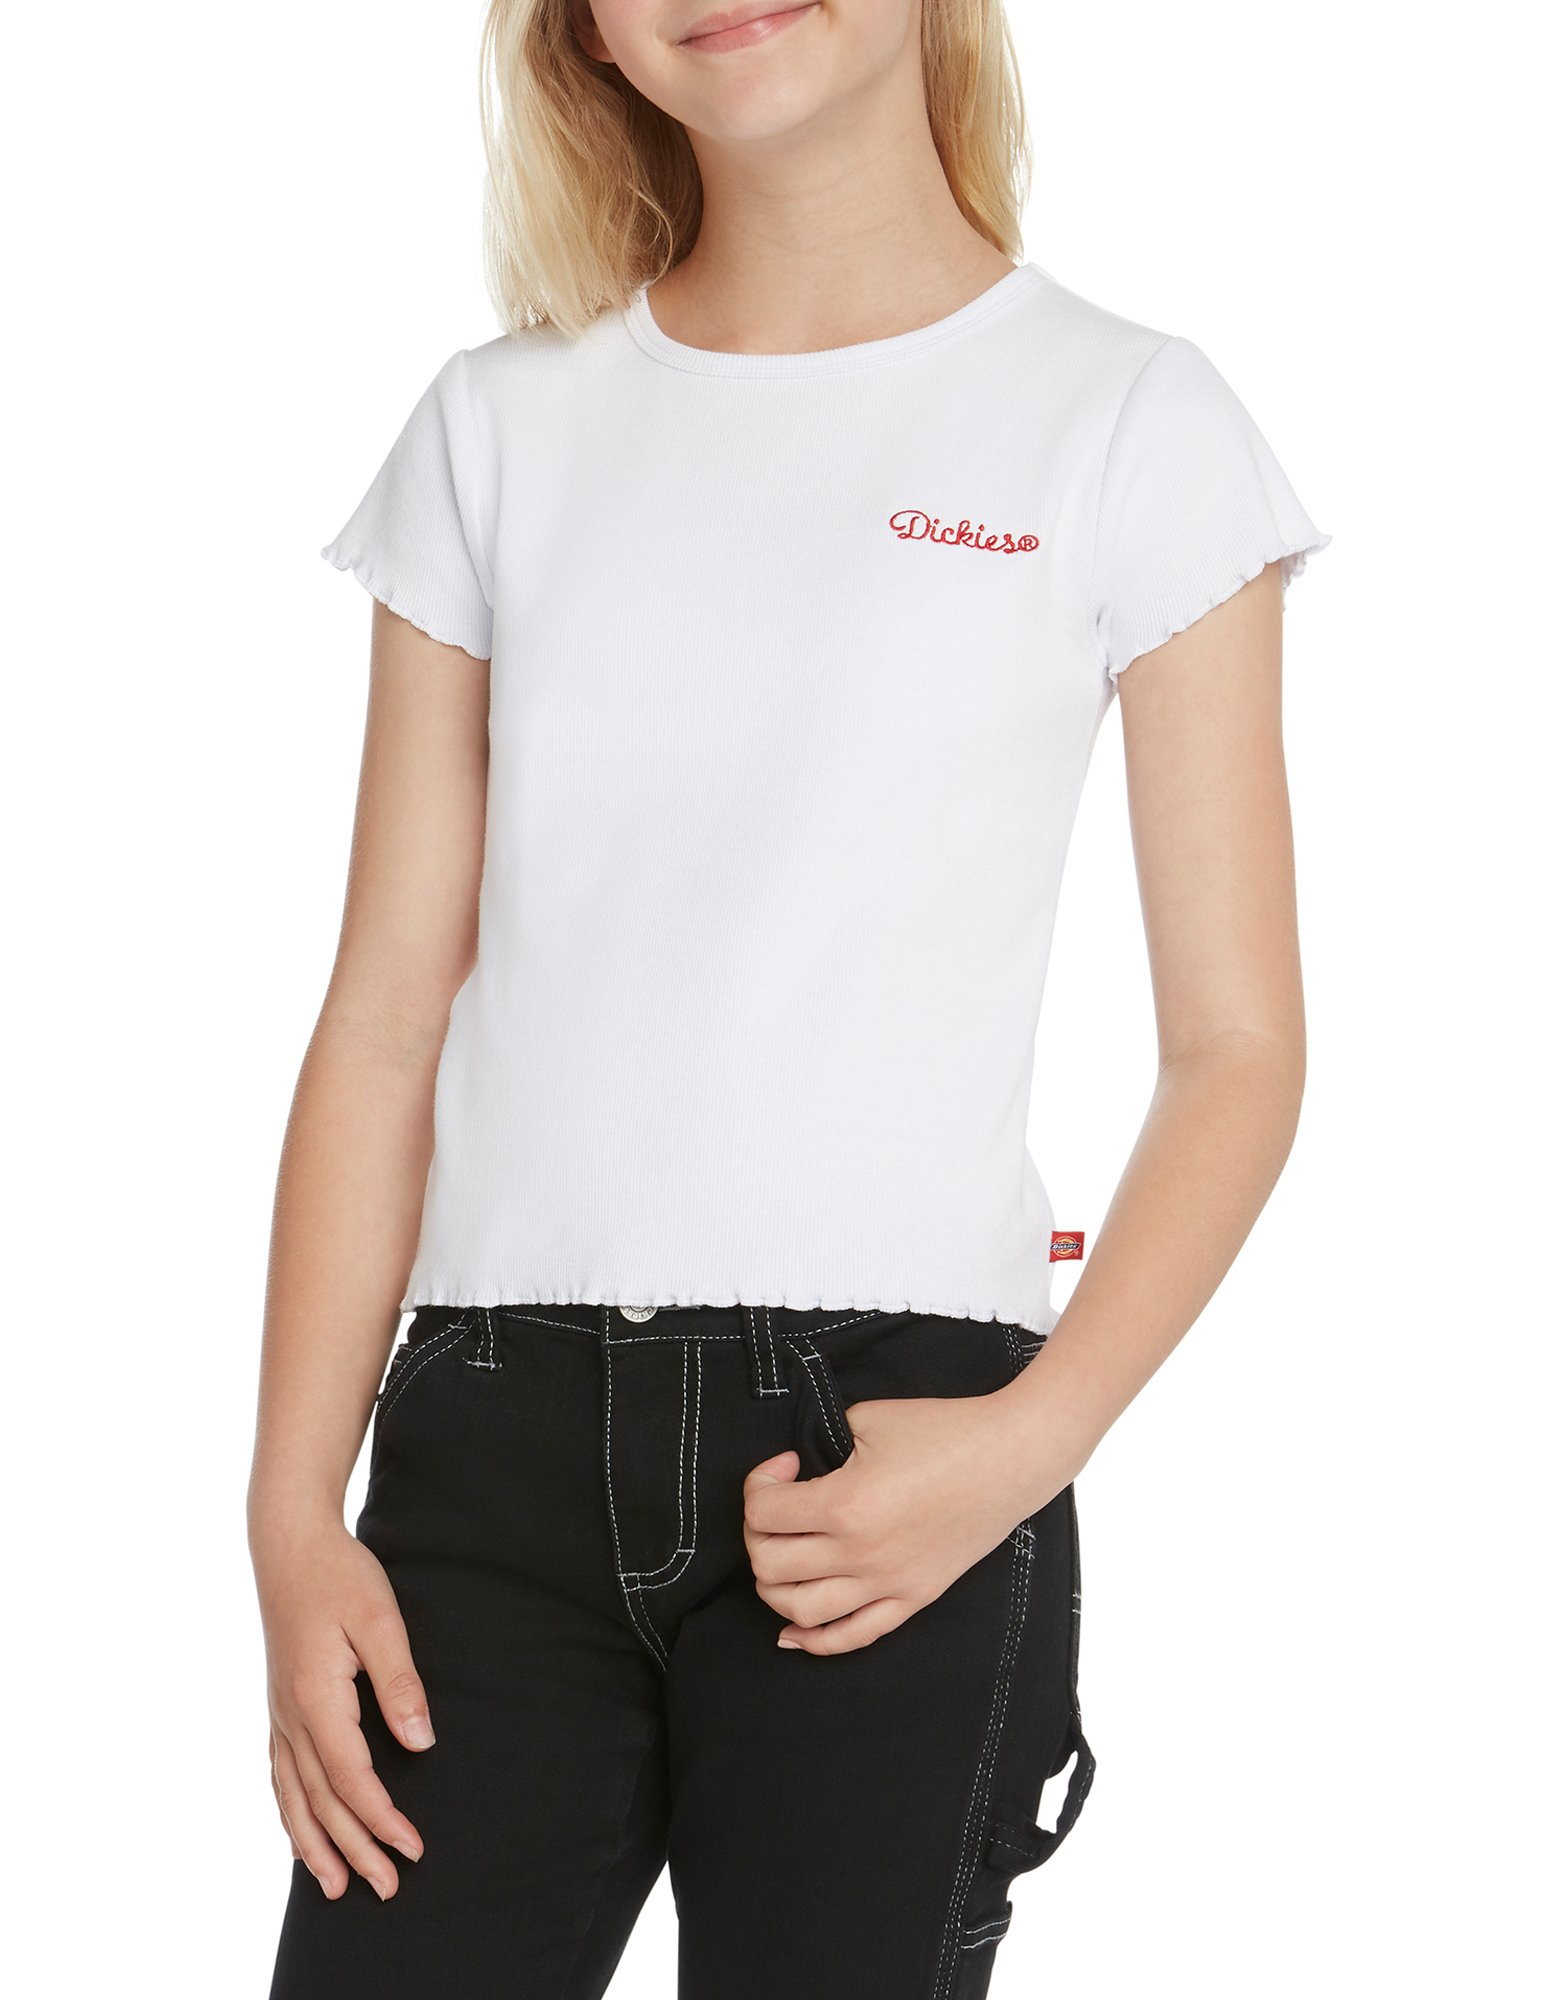 Girls' Short Sleeve Embroidered T-Shirt - White (WH)